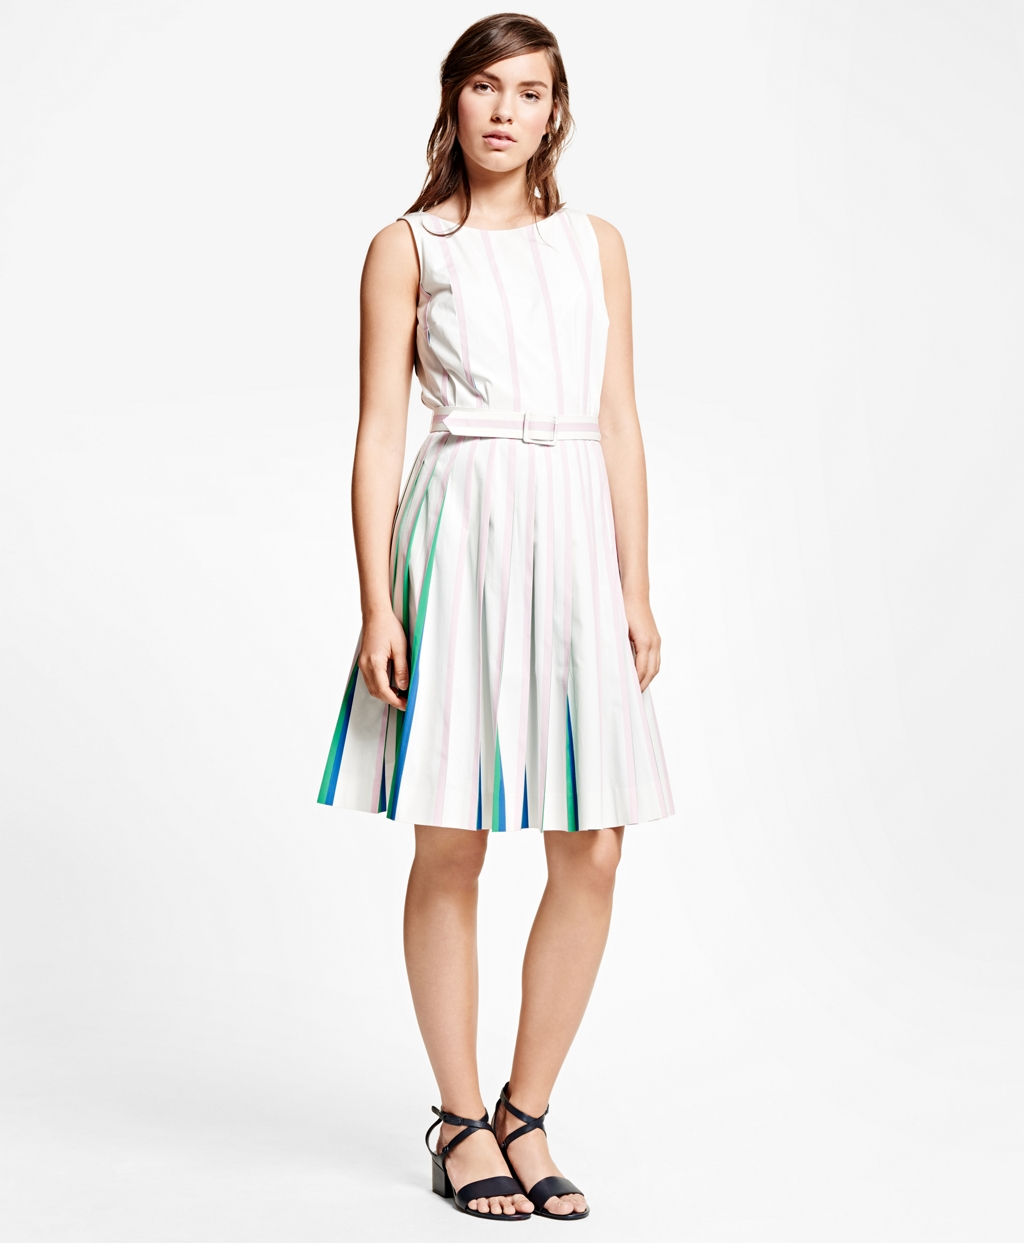 Buy Cheap Extremely Discount Codes Shopping Online Brooks Brothers Sleeveless Knee-Length Dress Sale Hot Sale Discount Wholesale Price 82nuP